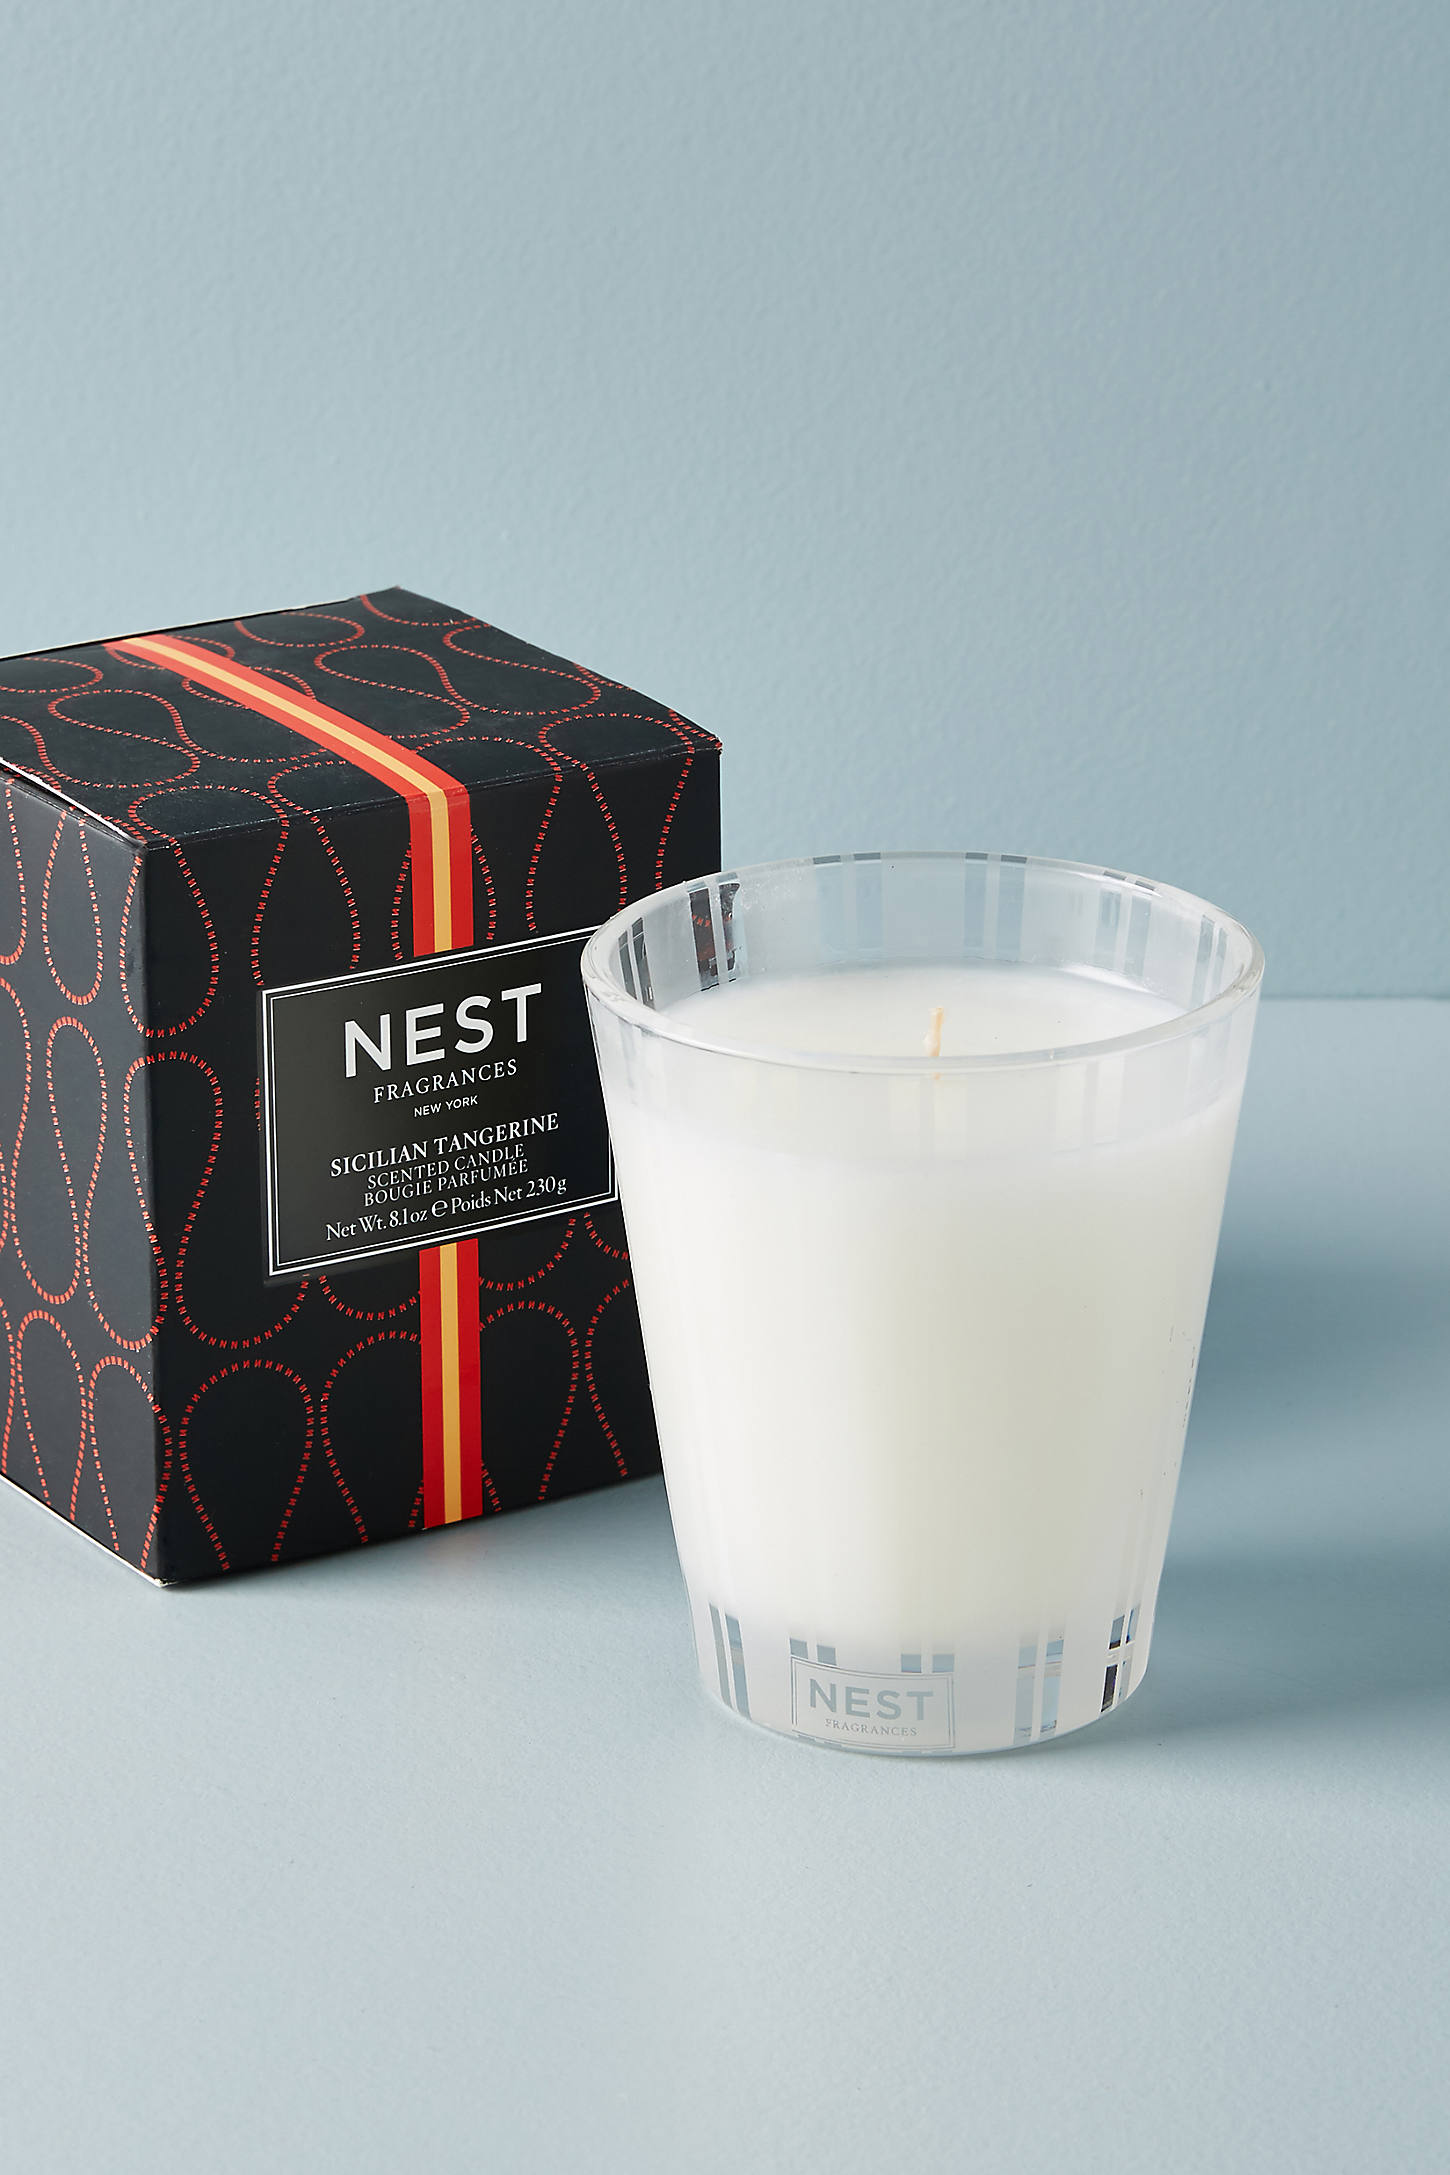 Nest Fragrances Classic Boxed Candle In Orange